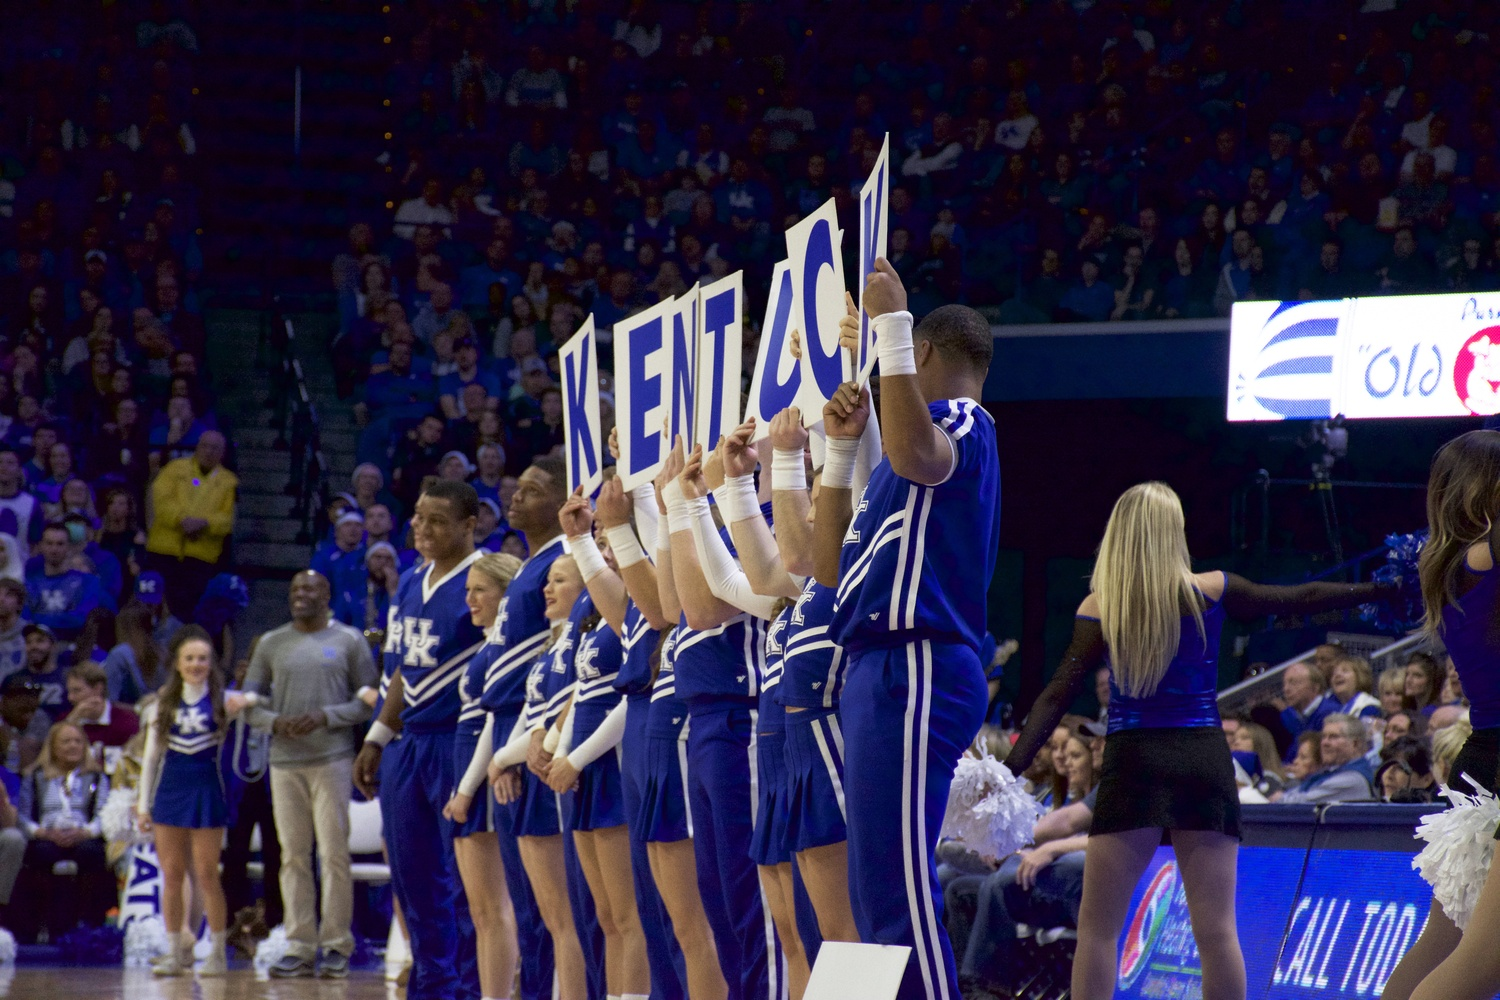 Emerging every timeout, the polished Kentucky cheer squad kept Rupp Arena's nearly 23,000 attendants loud during the Harvard match.